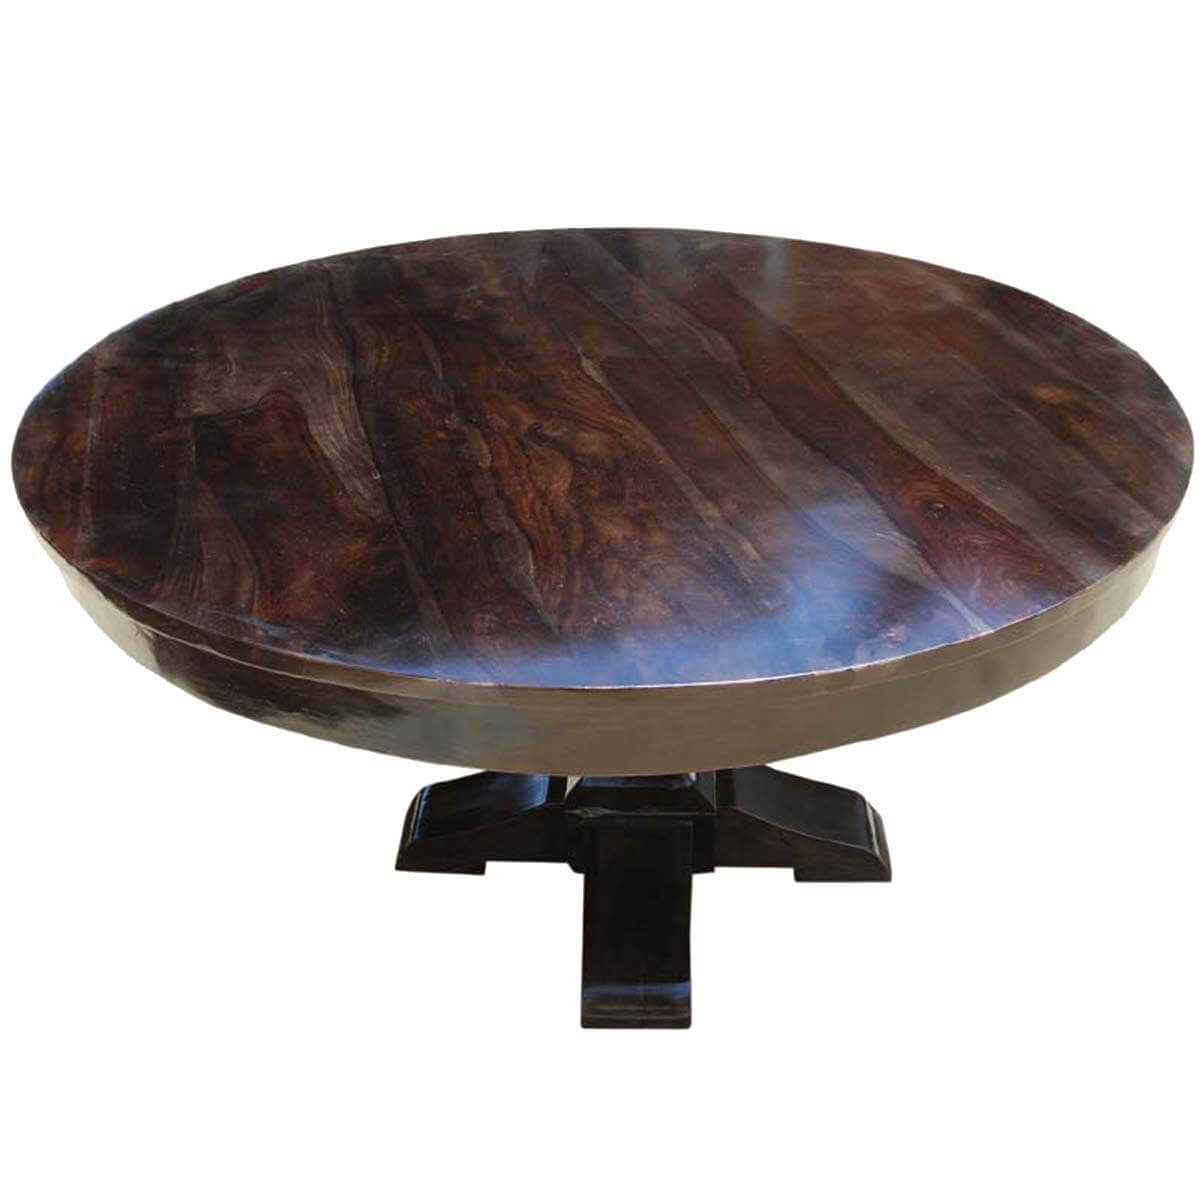 "Round Solid Wood Dining Table: Rustic Solid Wood 60"" Round Dining Table"